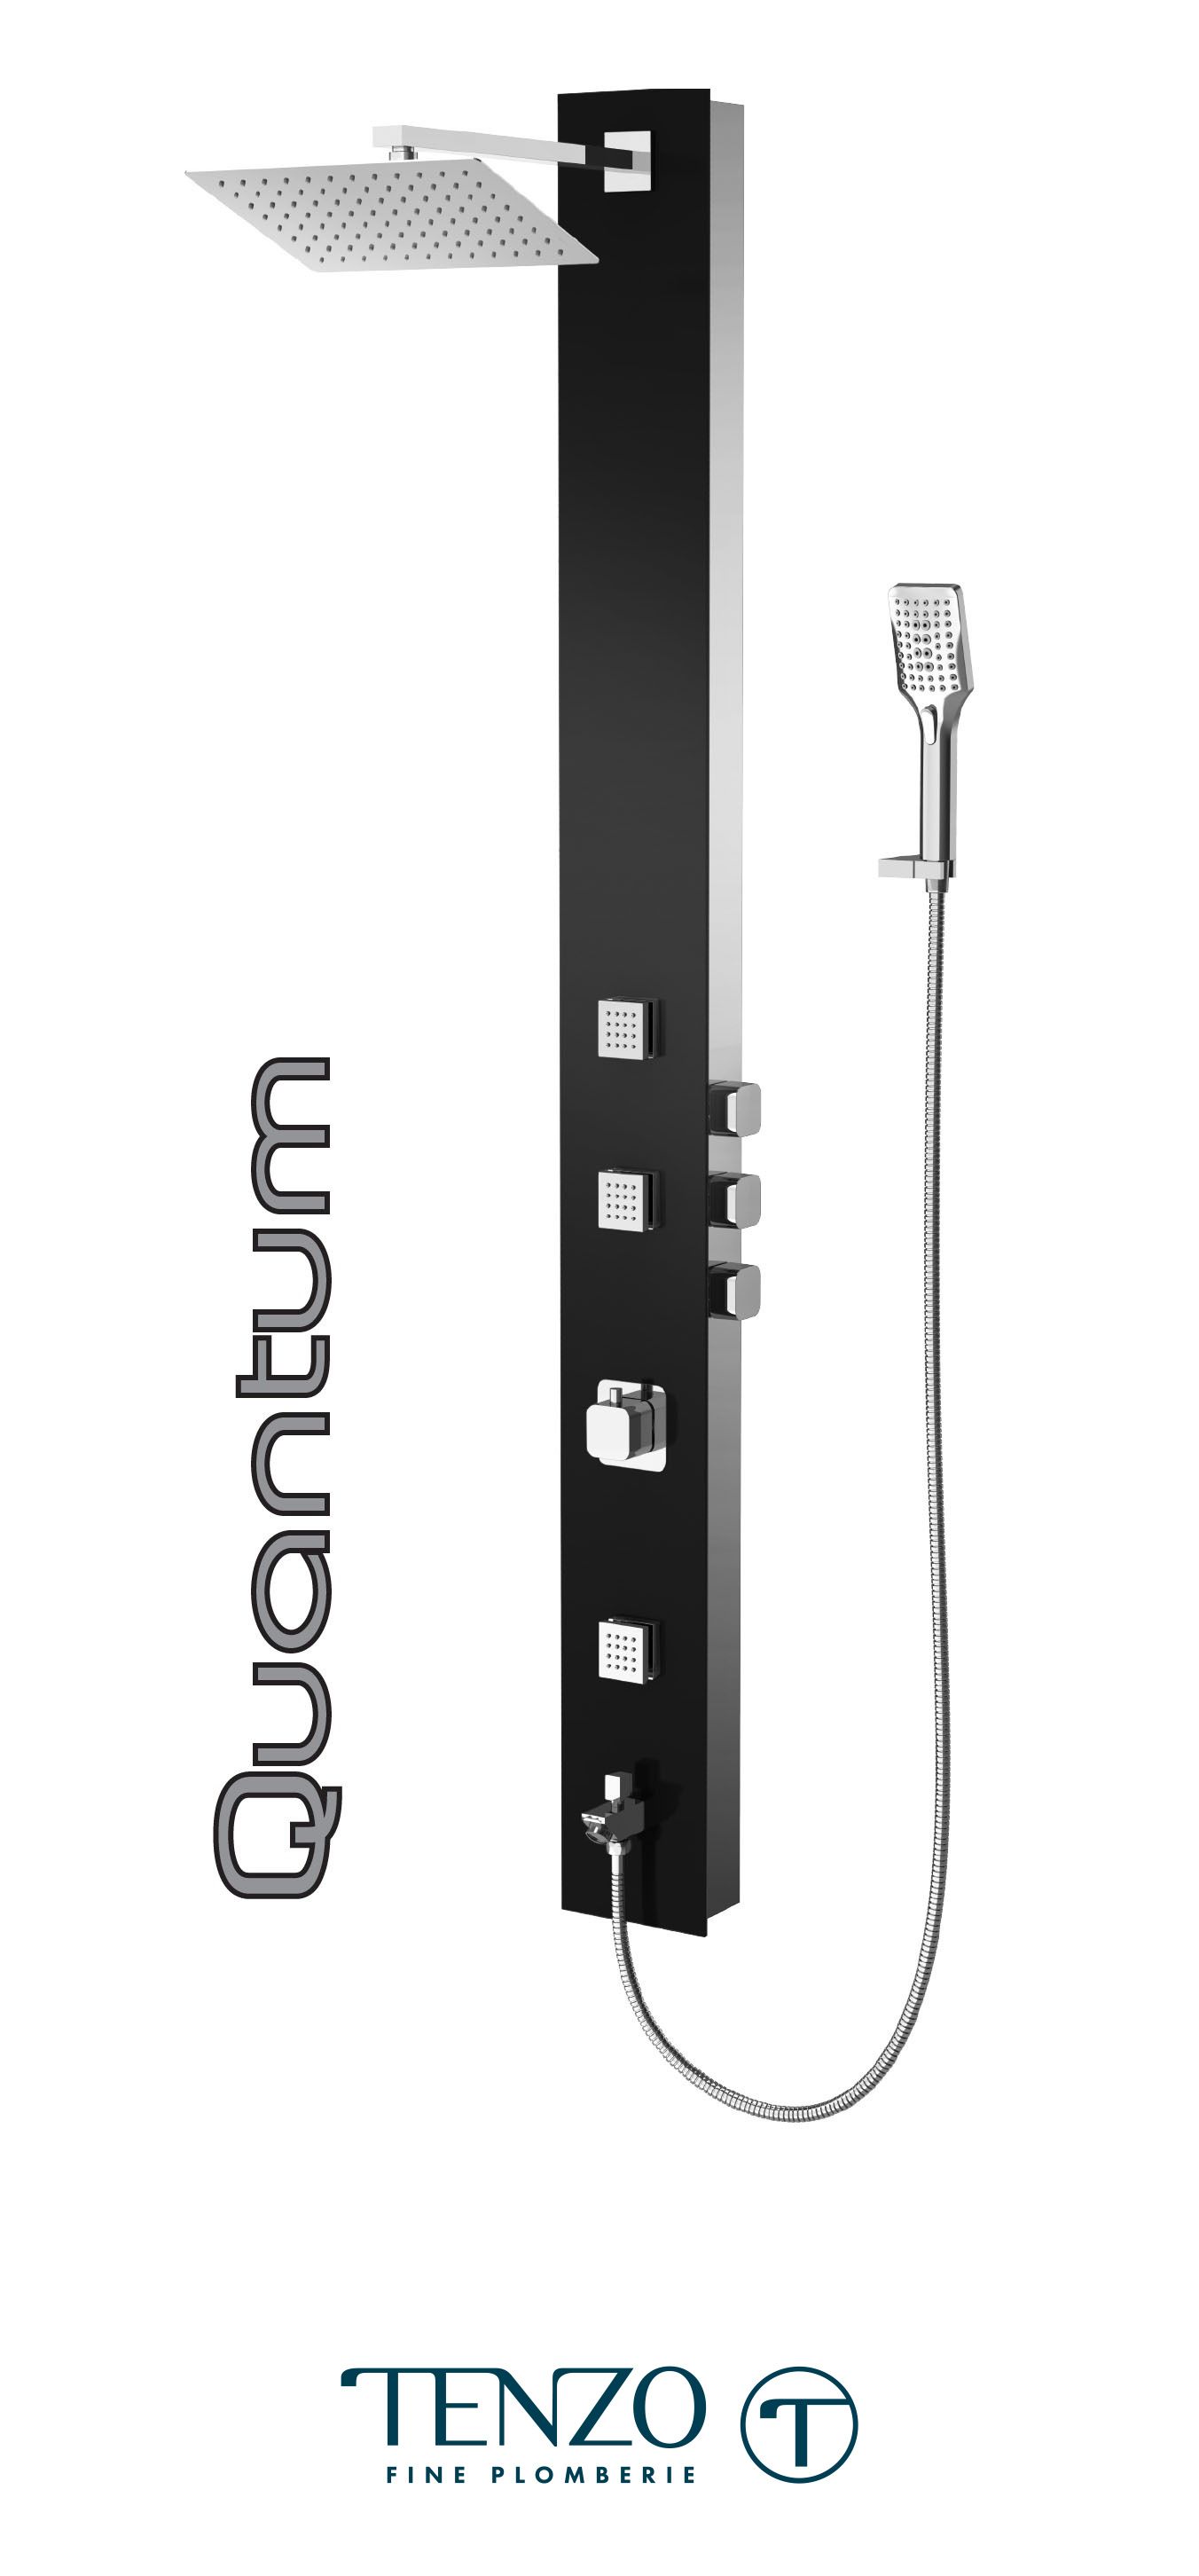 TZG2-XX-QU-SX - Shower columns - Tempered Glass, 3 functions